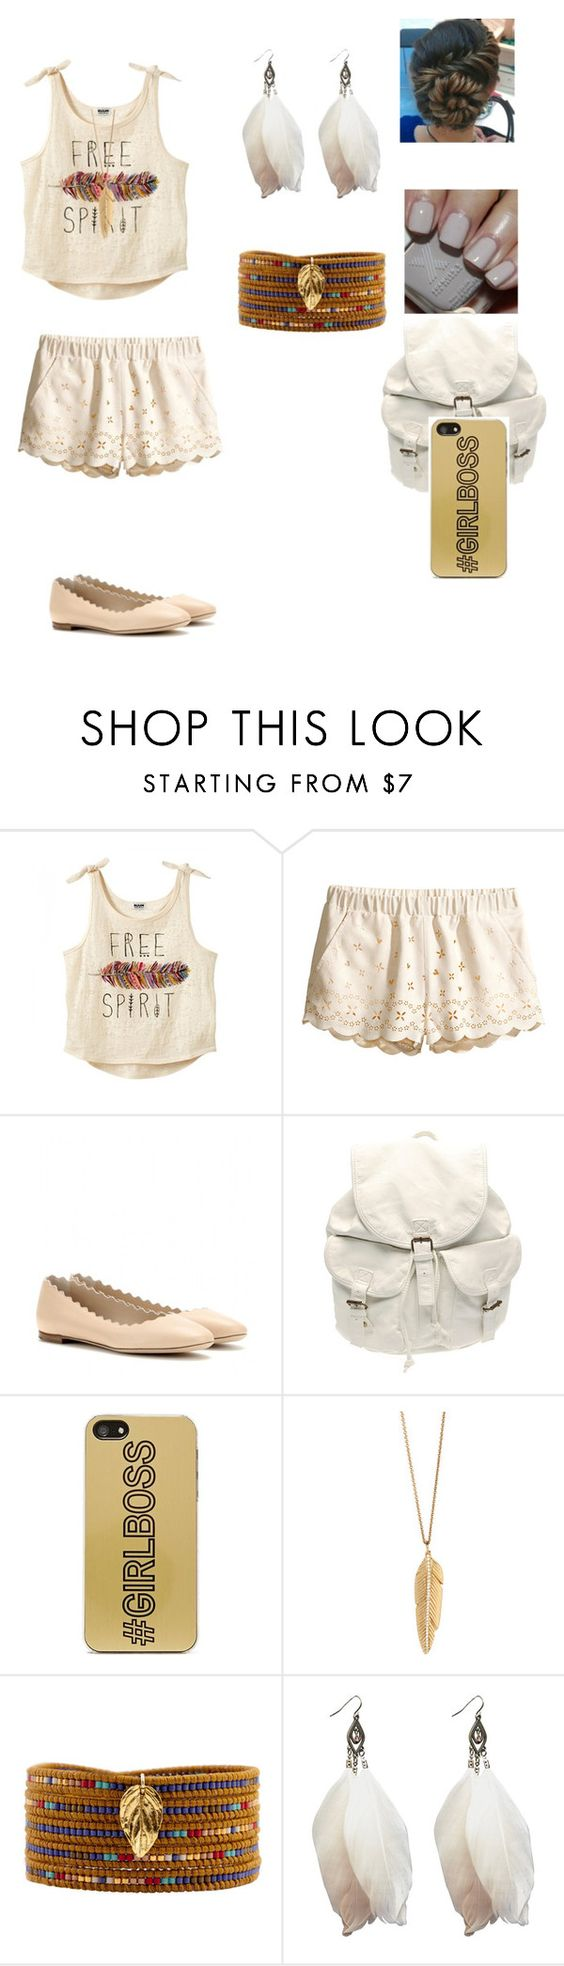 """""""Untitled #9"""" by neoncupcakes23 ❤ liked on Polyvore featuring H&M, Chloé, Sephora Collection, Zero Gravity, ZoÃ« Chicco, Chan Luu and Wet Seal"""